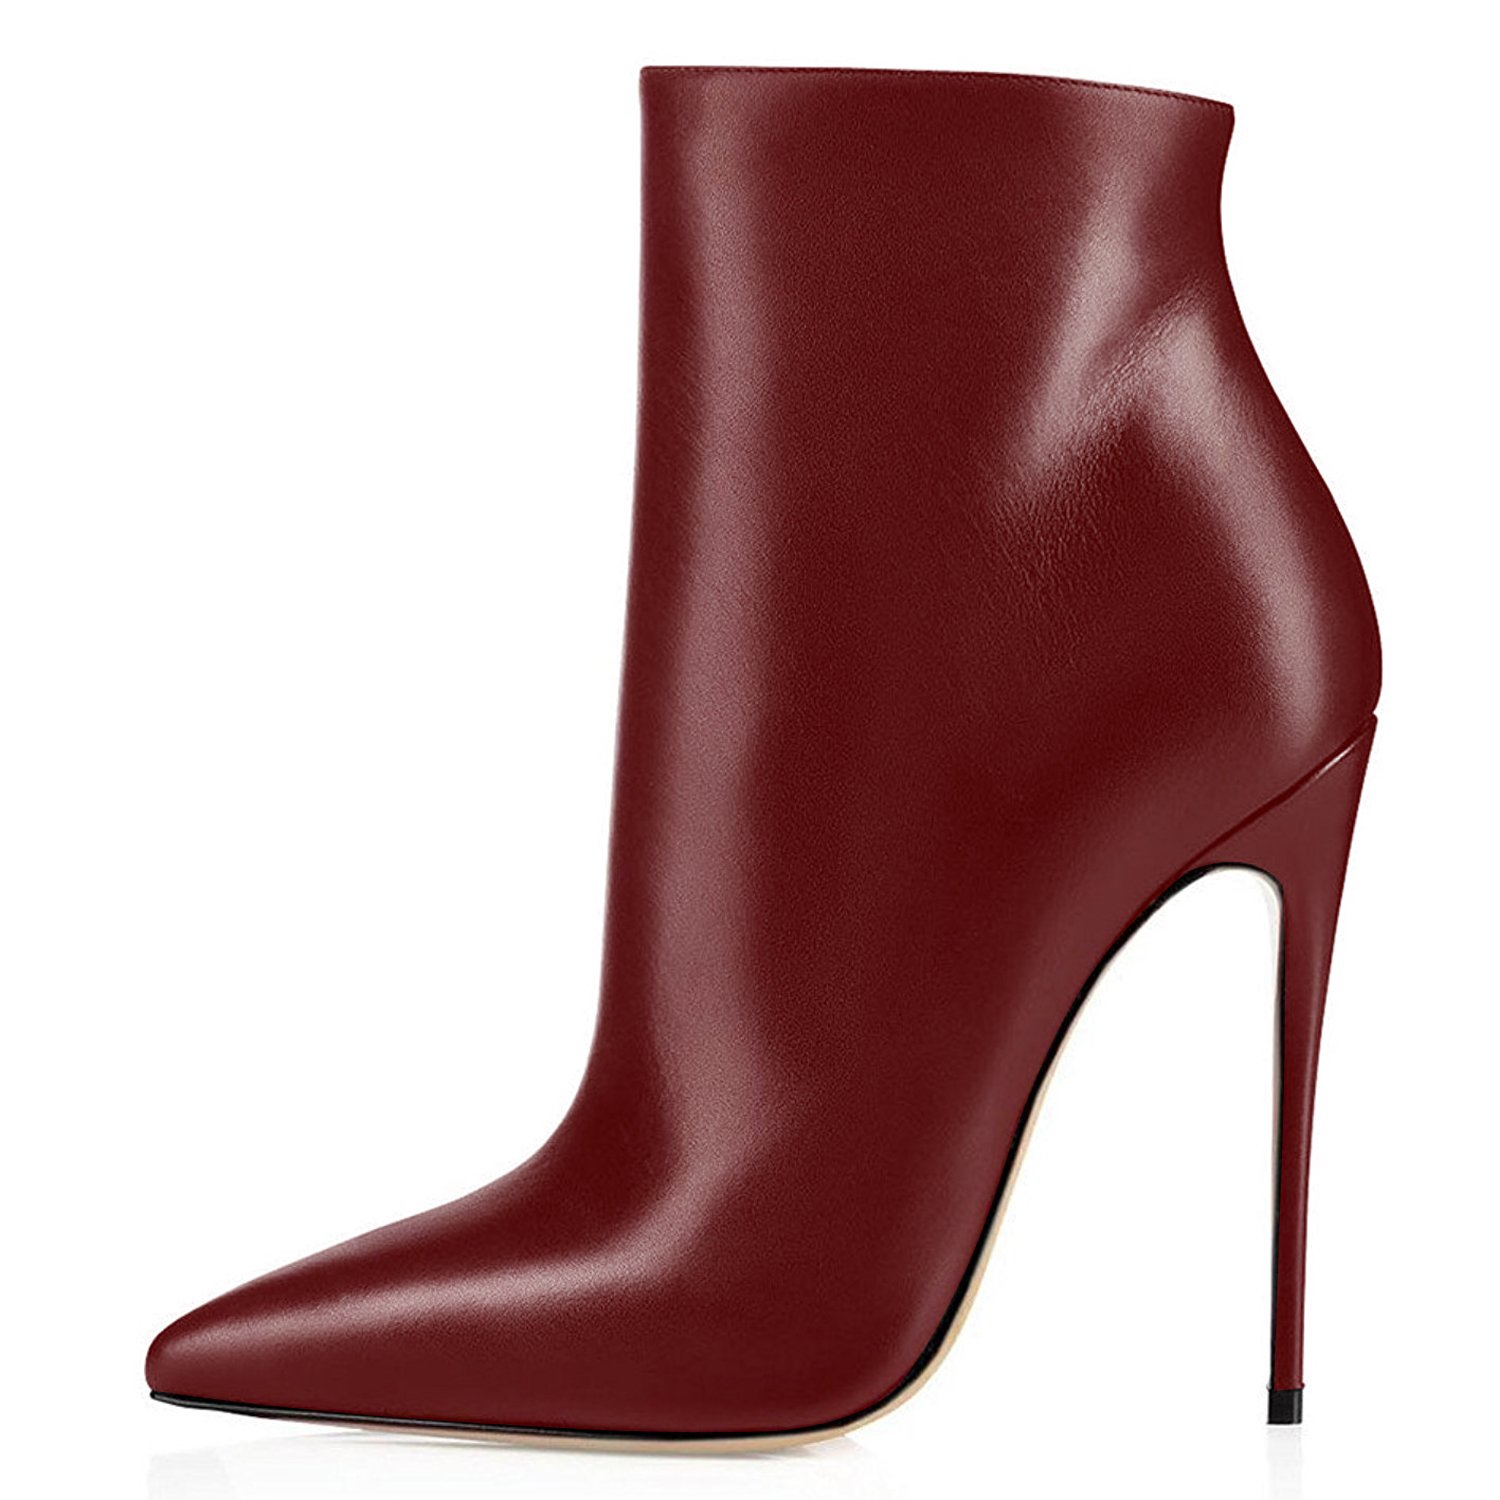 ELASHE Bottes Classiques Femme Stiletto | 12cm Bottine à B075QLF8MT 19184 Talon Haut | Zip Stiletto Talons hauts Ankle Boots Chaussures Bordeaux a9aaaf0 - therethere.space